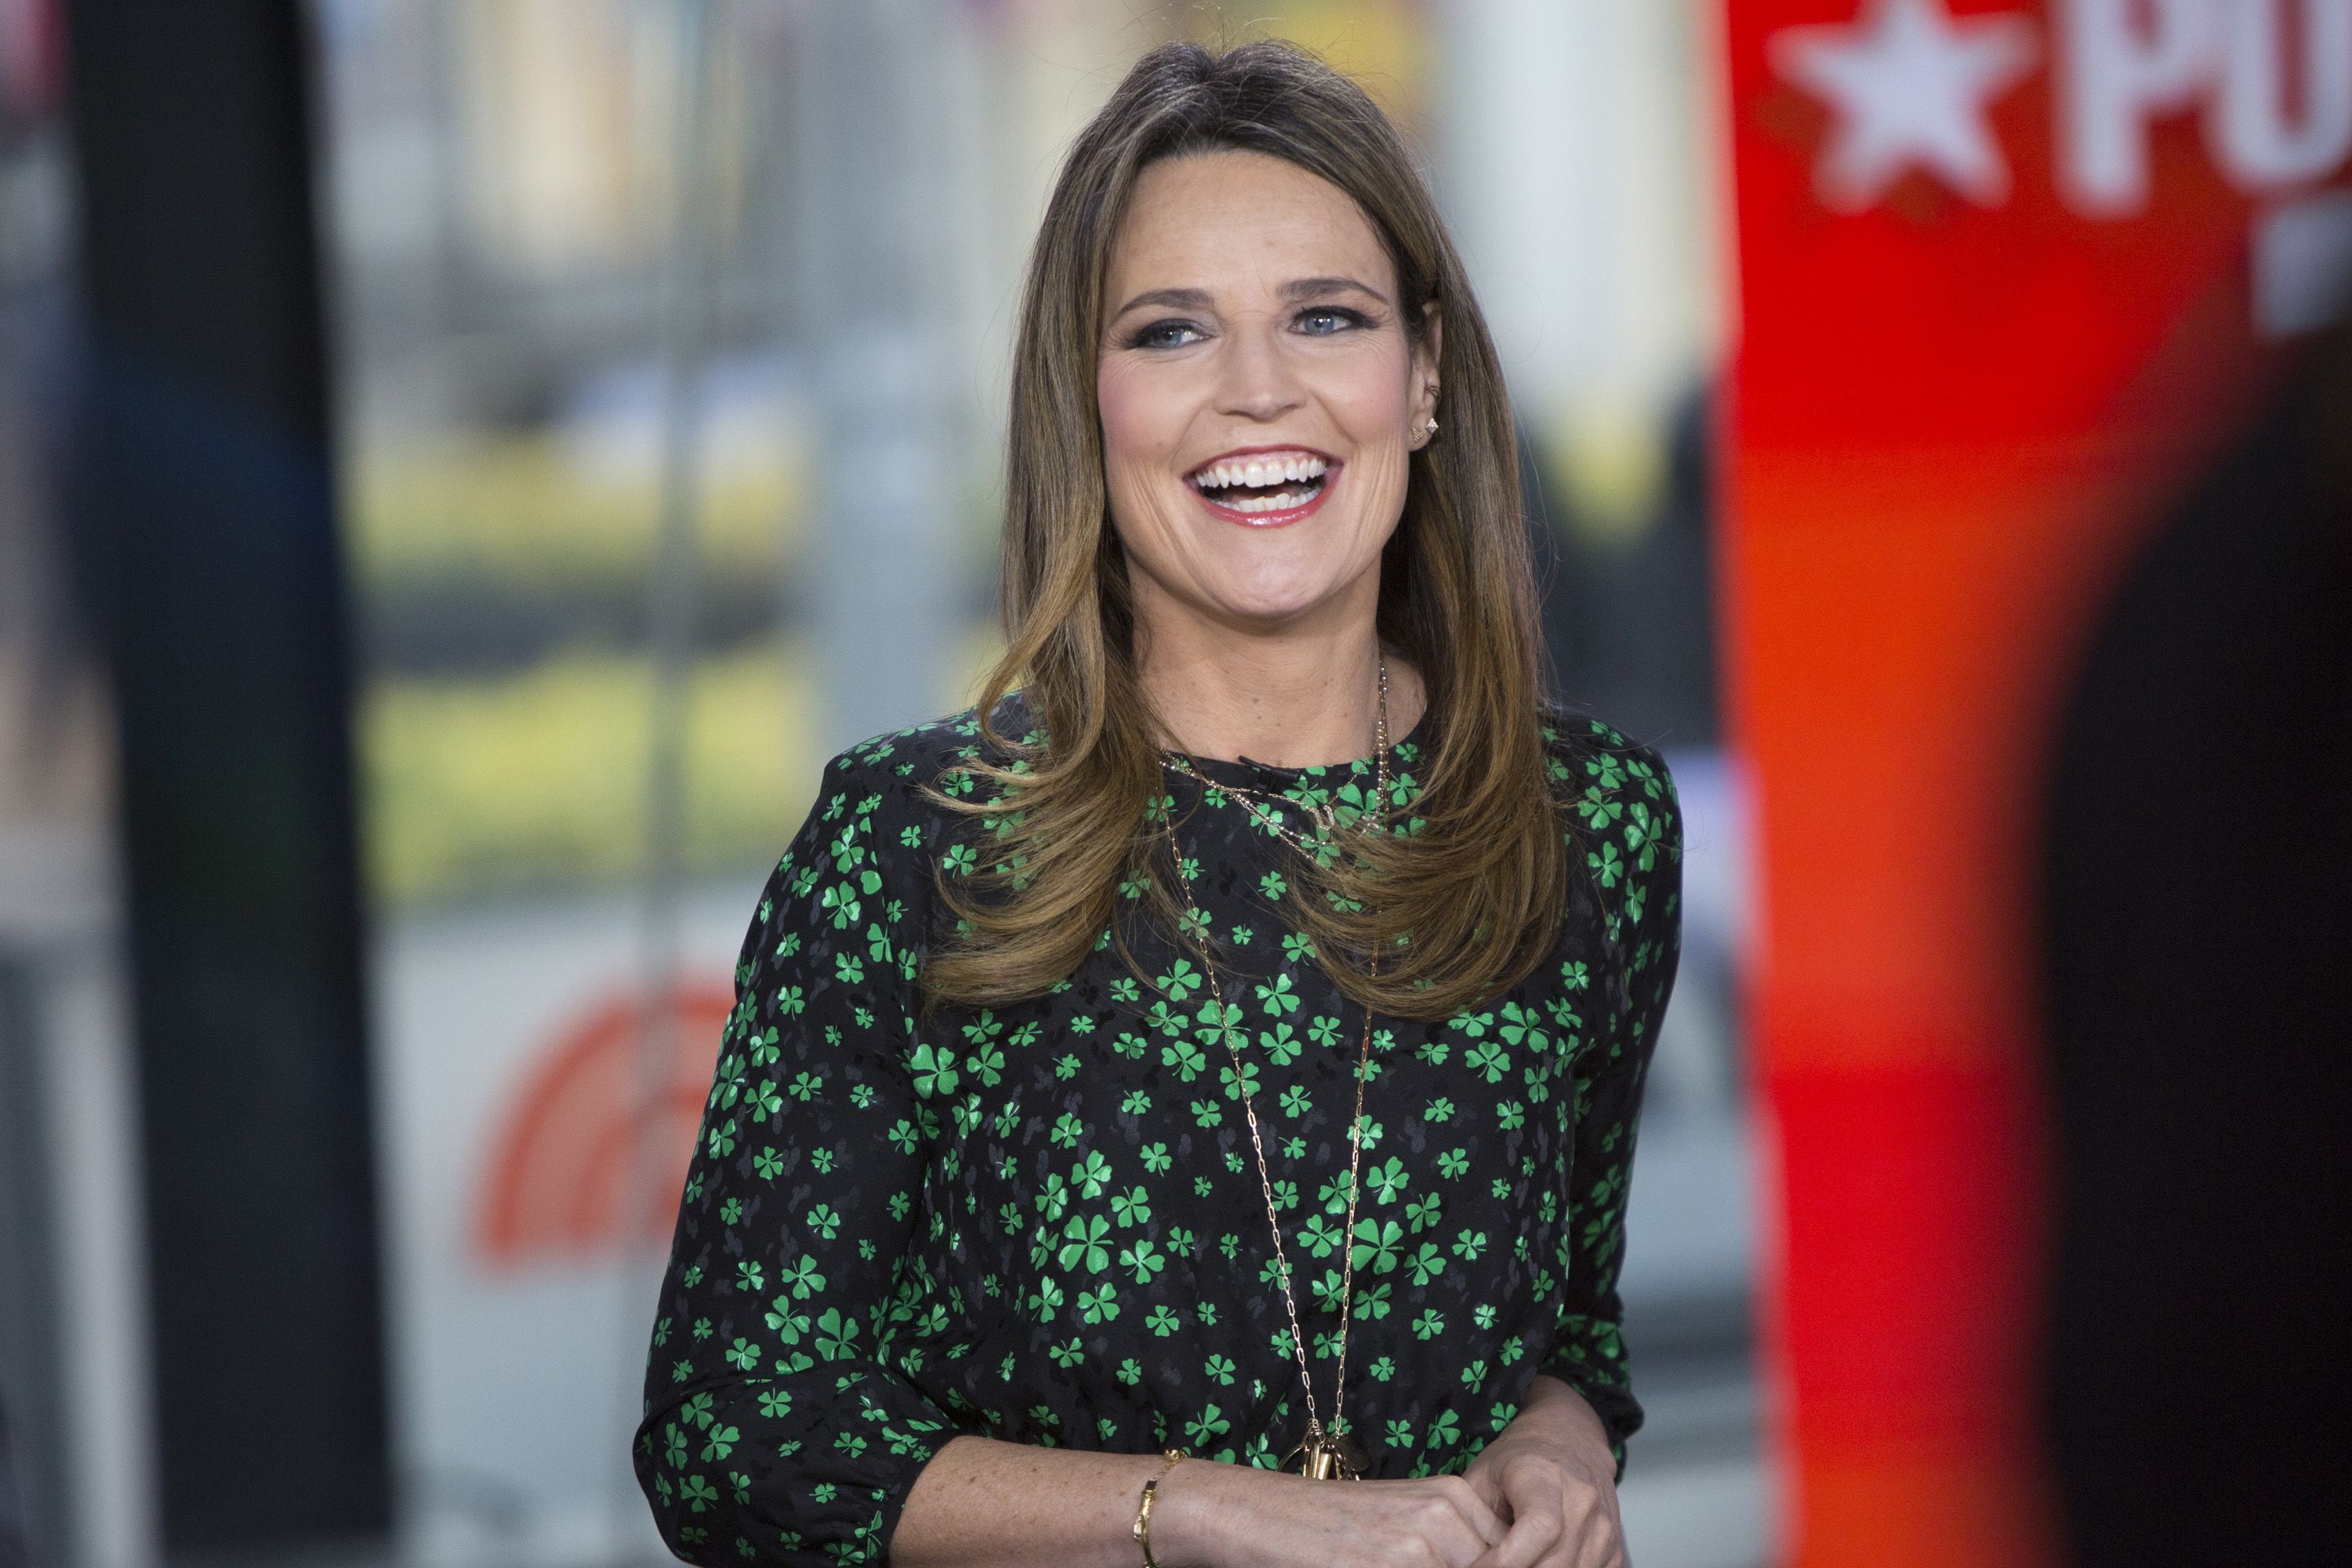 Savannah Guthrie Says Shes Been On The Keto Diet For 7 Weeks